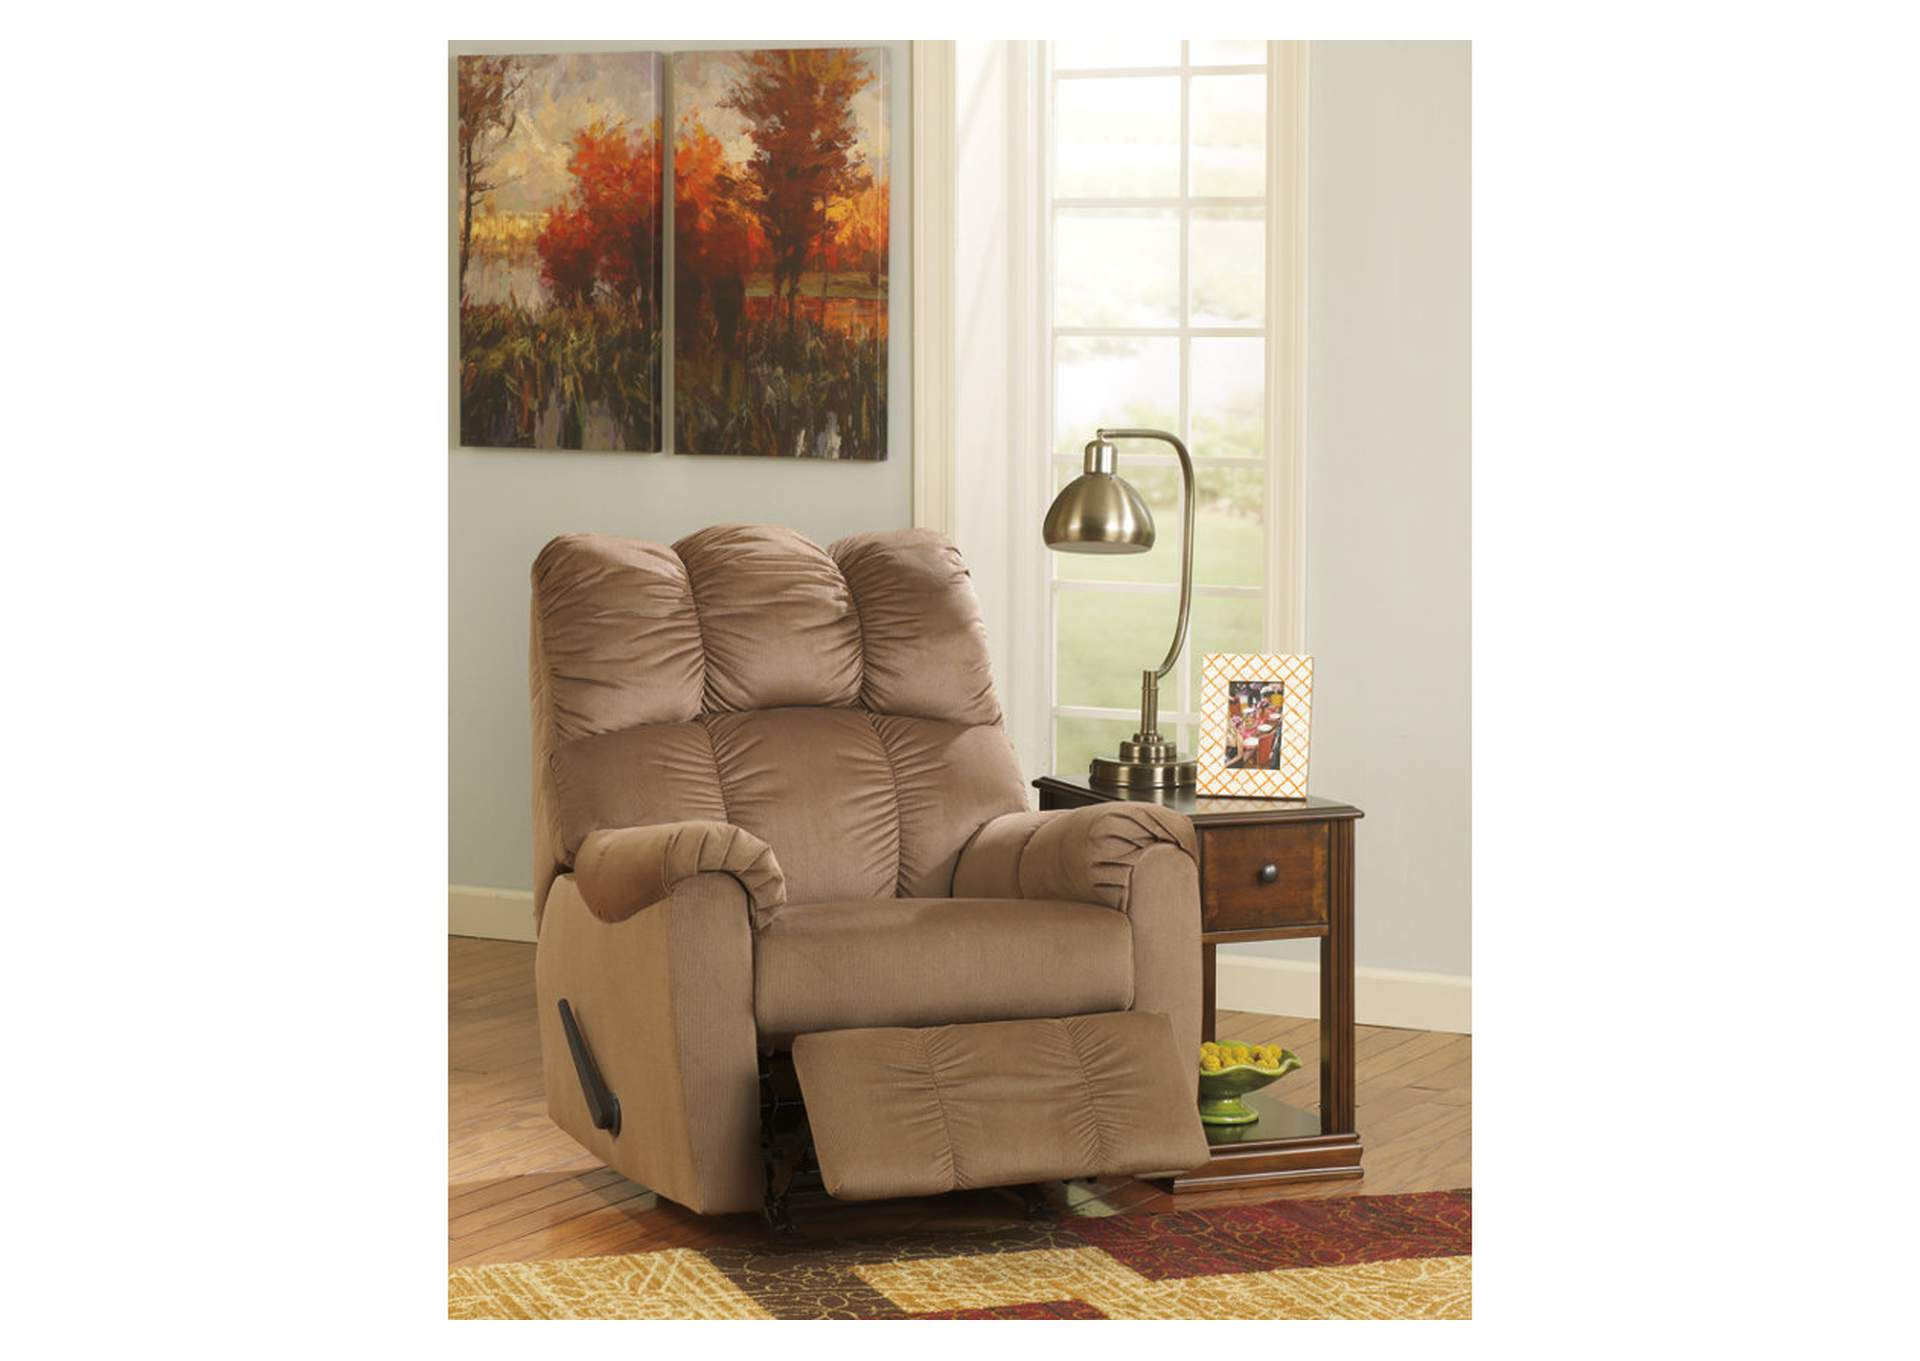 Davis Home Furniture Asheville Nc Raulo Mocha Rocker Recliner